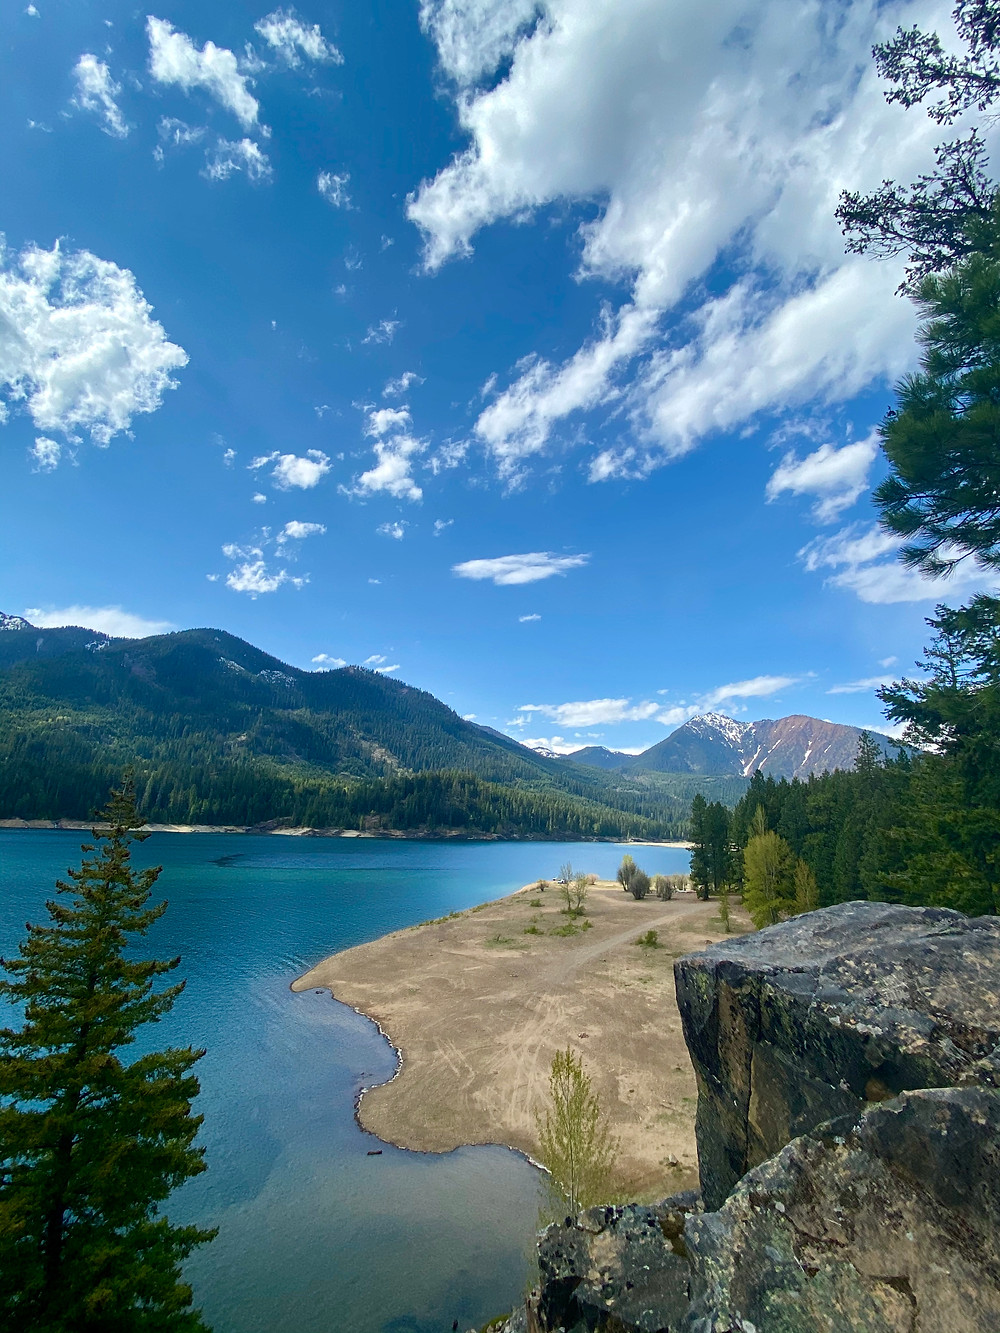 Things to Do This Summer in Roslyn, WA